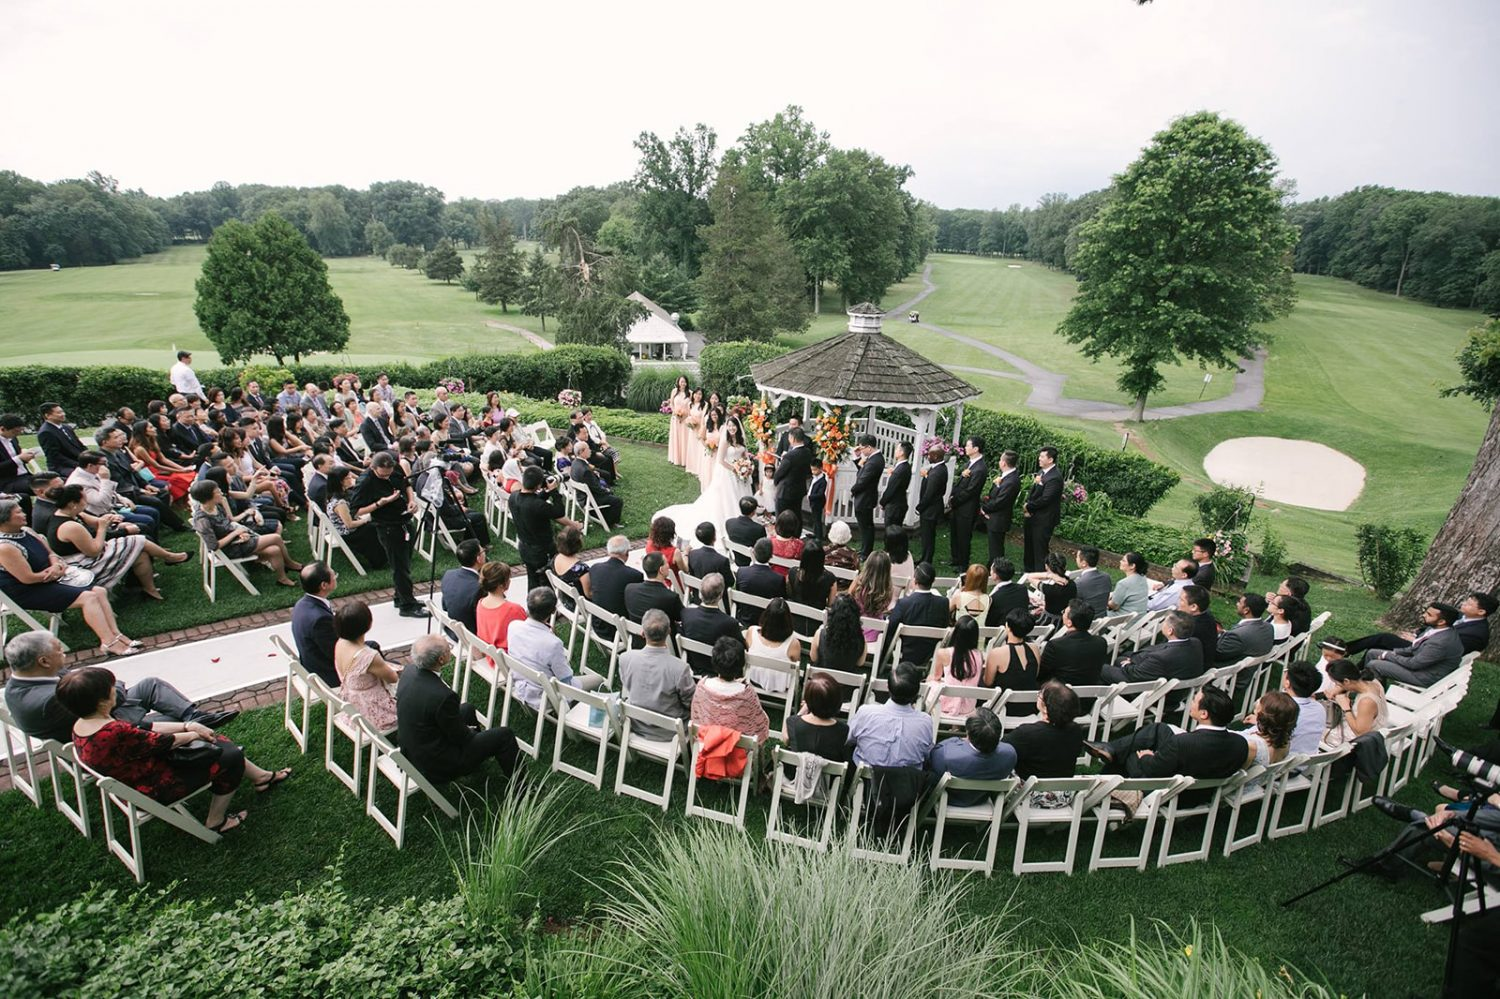 Wedding ceremony in a garden, country club-like setting along with plenty of greeneries